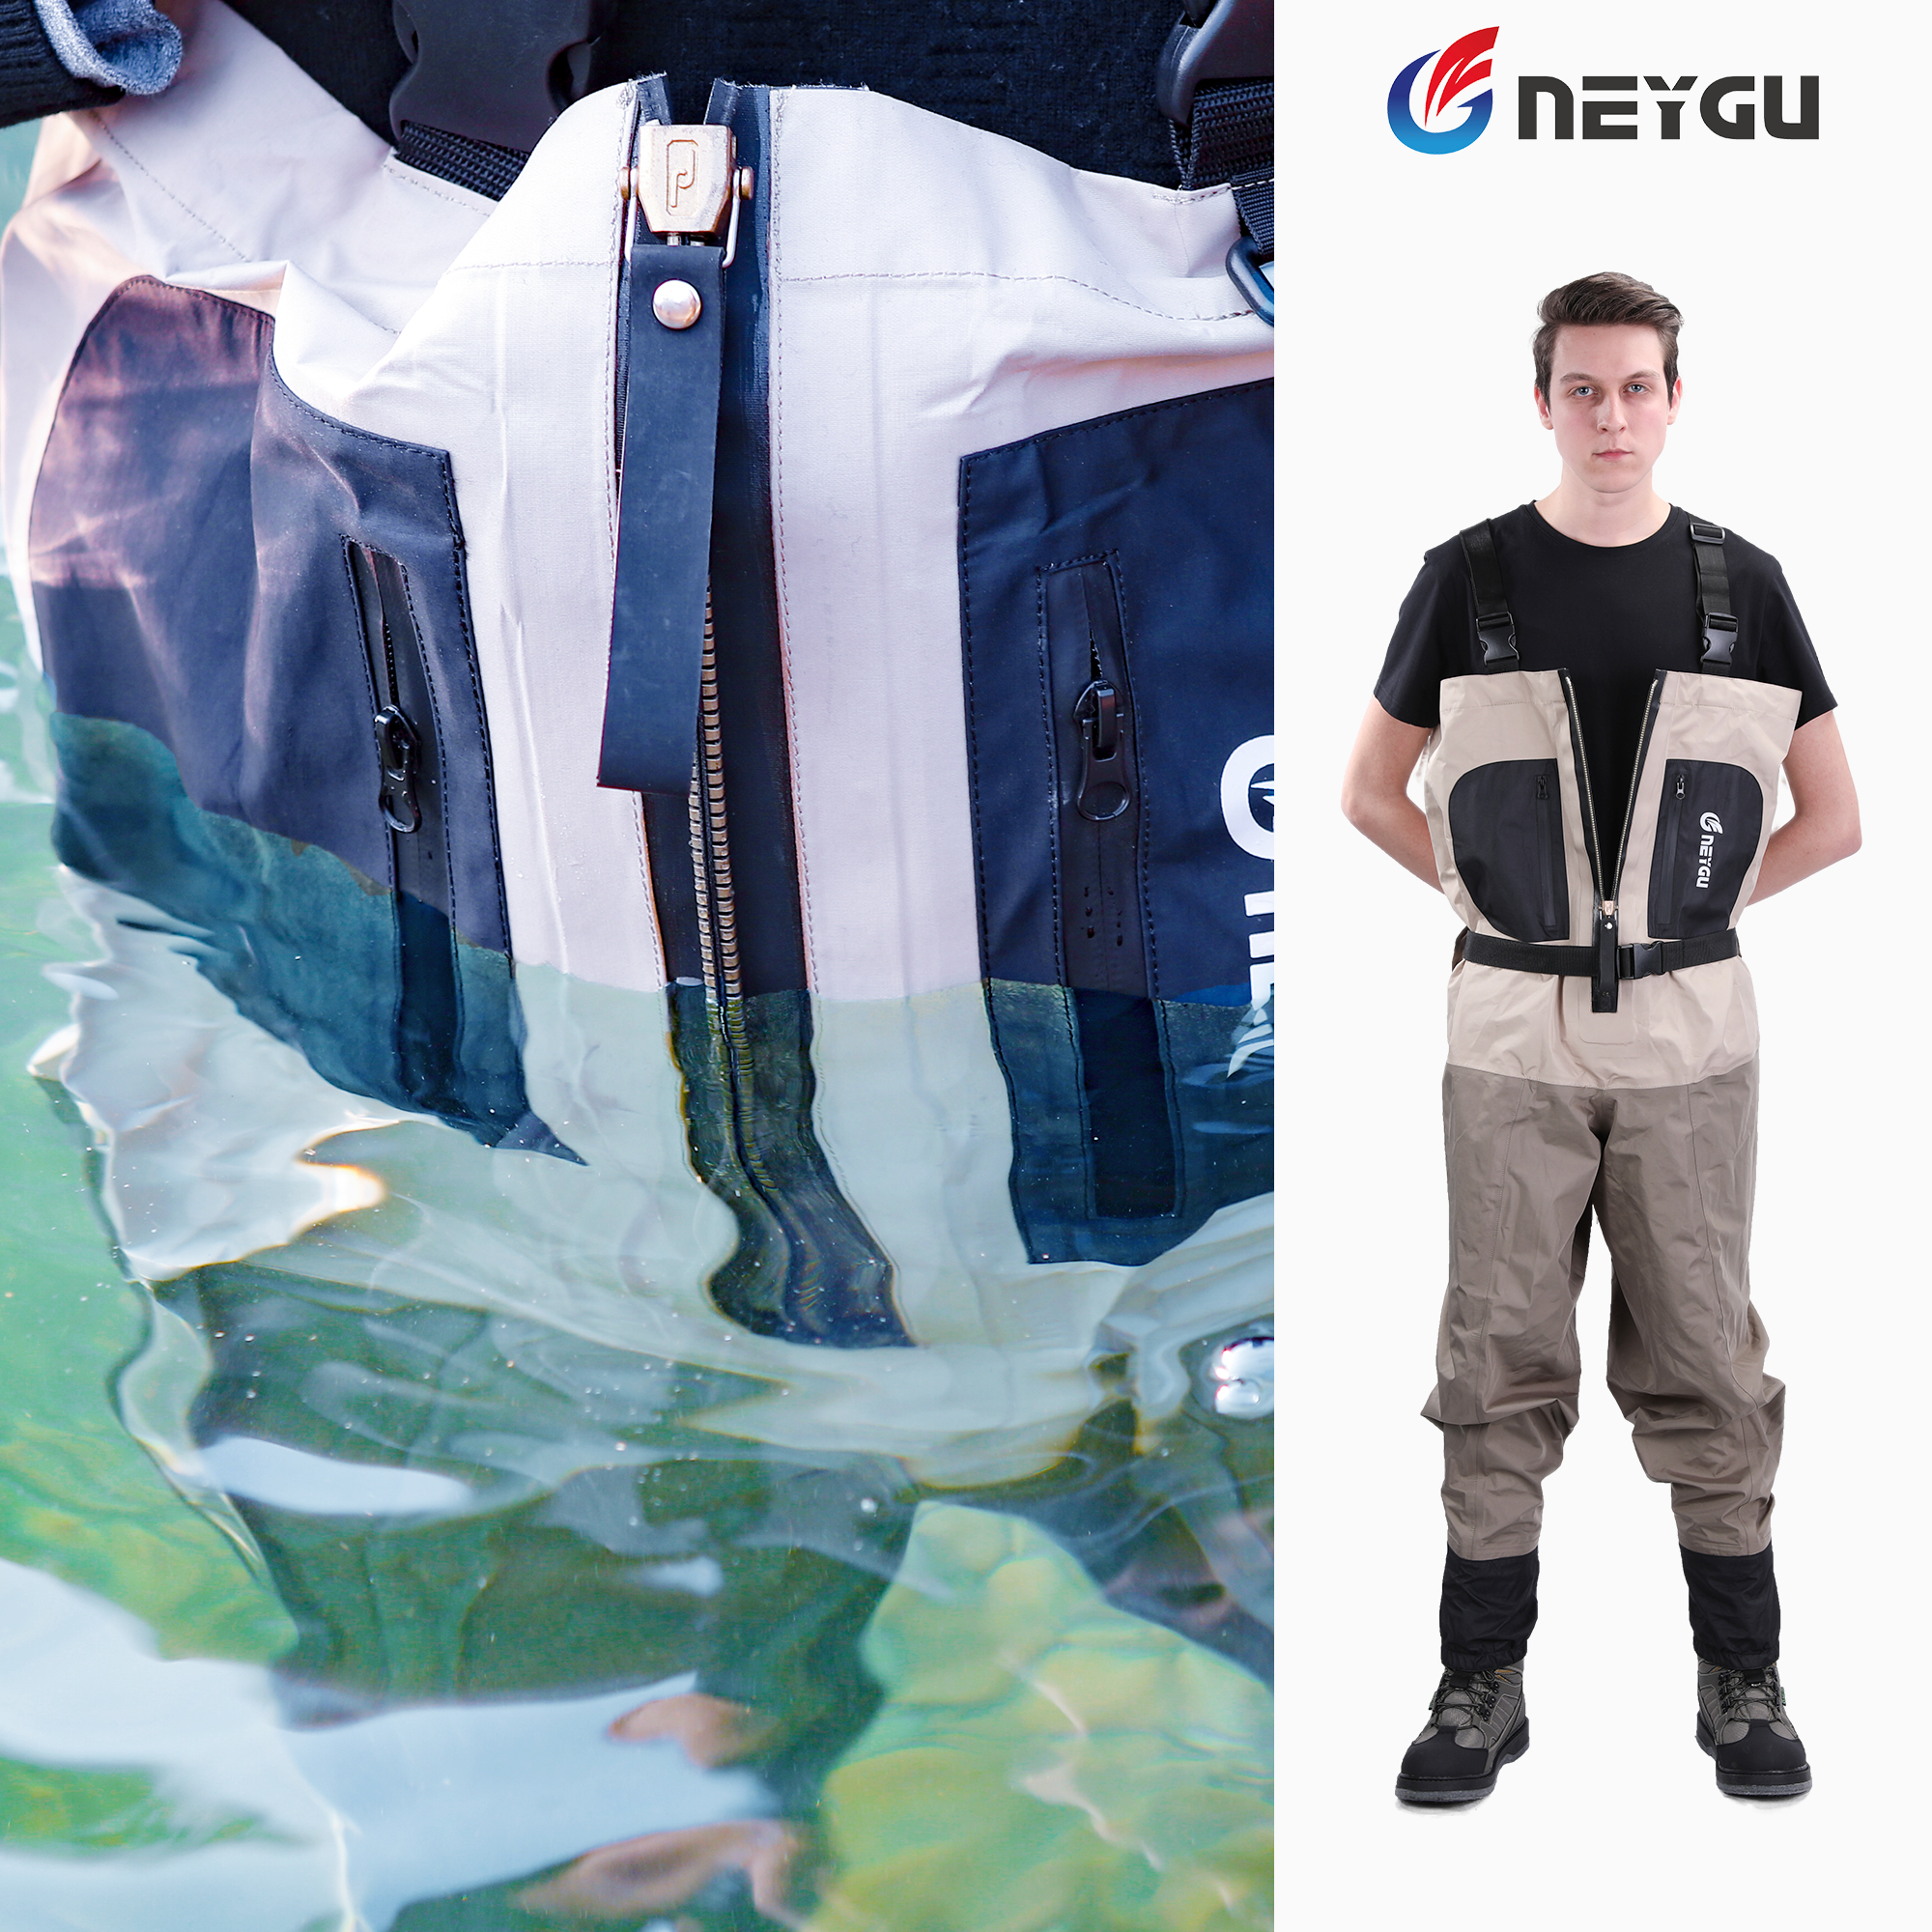 NEYGU Hot Style Waterproof Ventilate Adult Waders Attached Stocking Foot With Zipper For Fishing Hunting